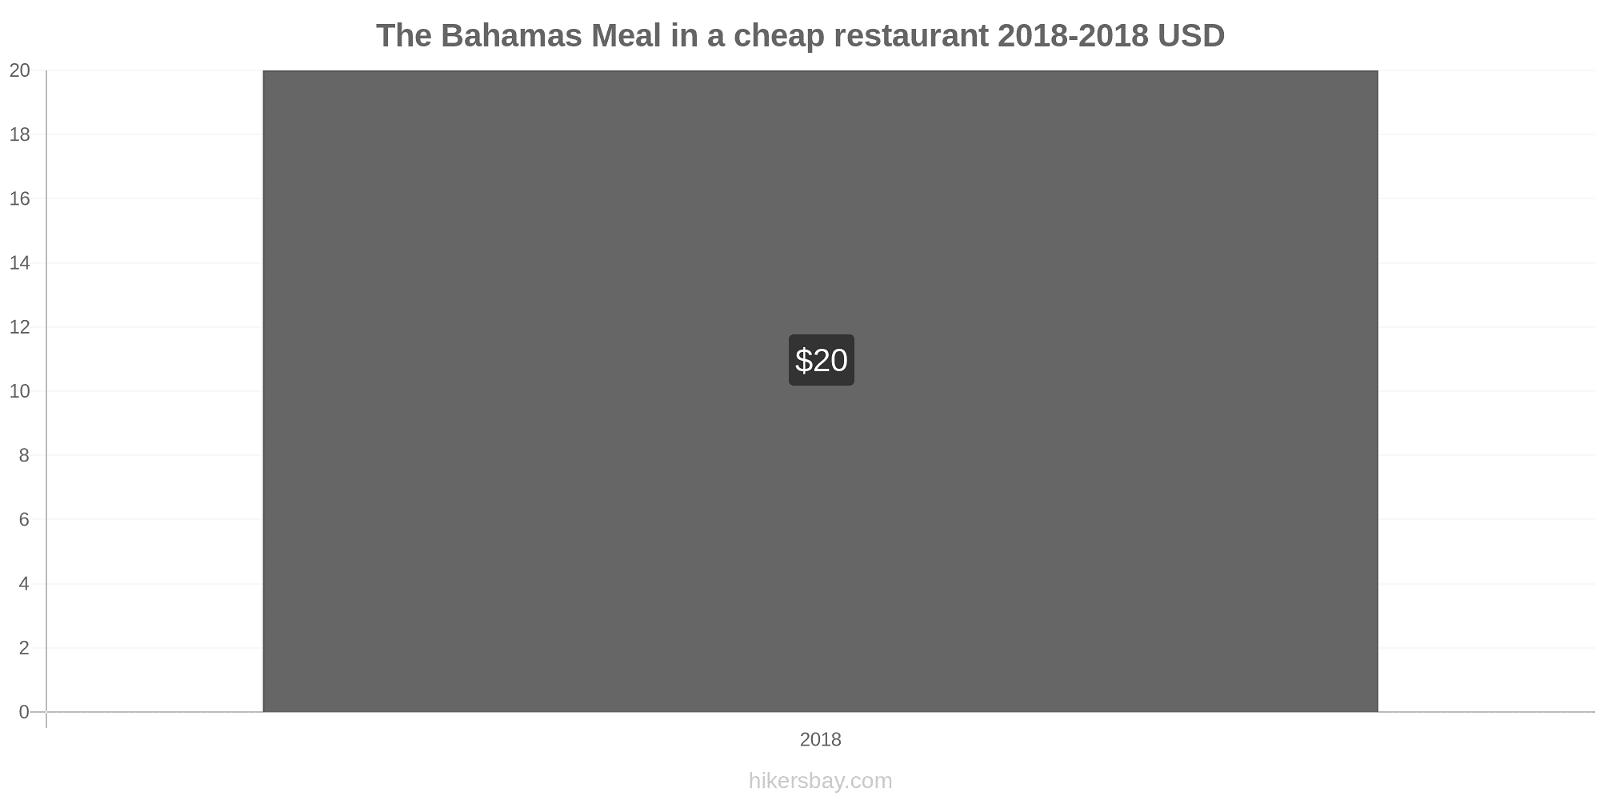 The Bahamas price changes Meal in a cheap restaurant hikersbay.com